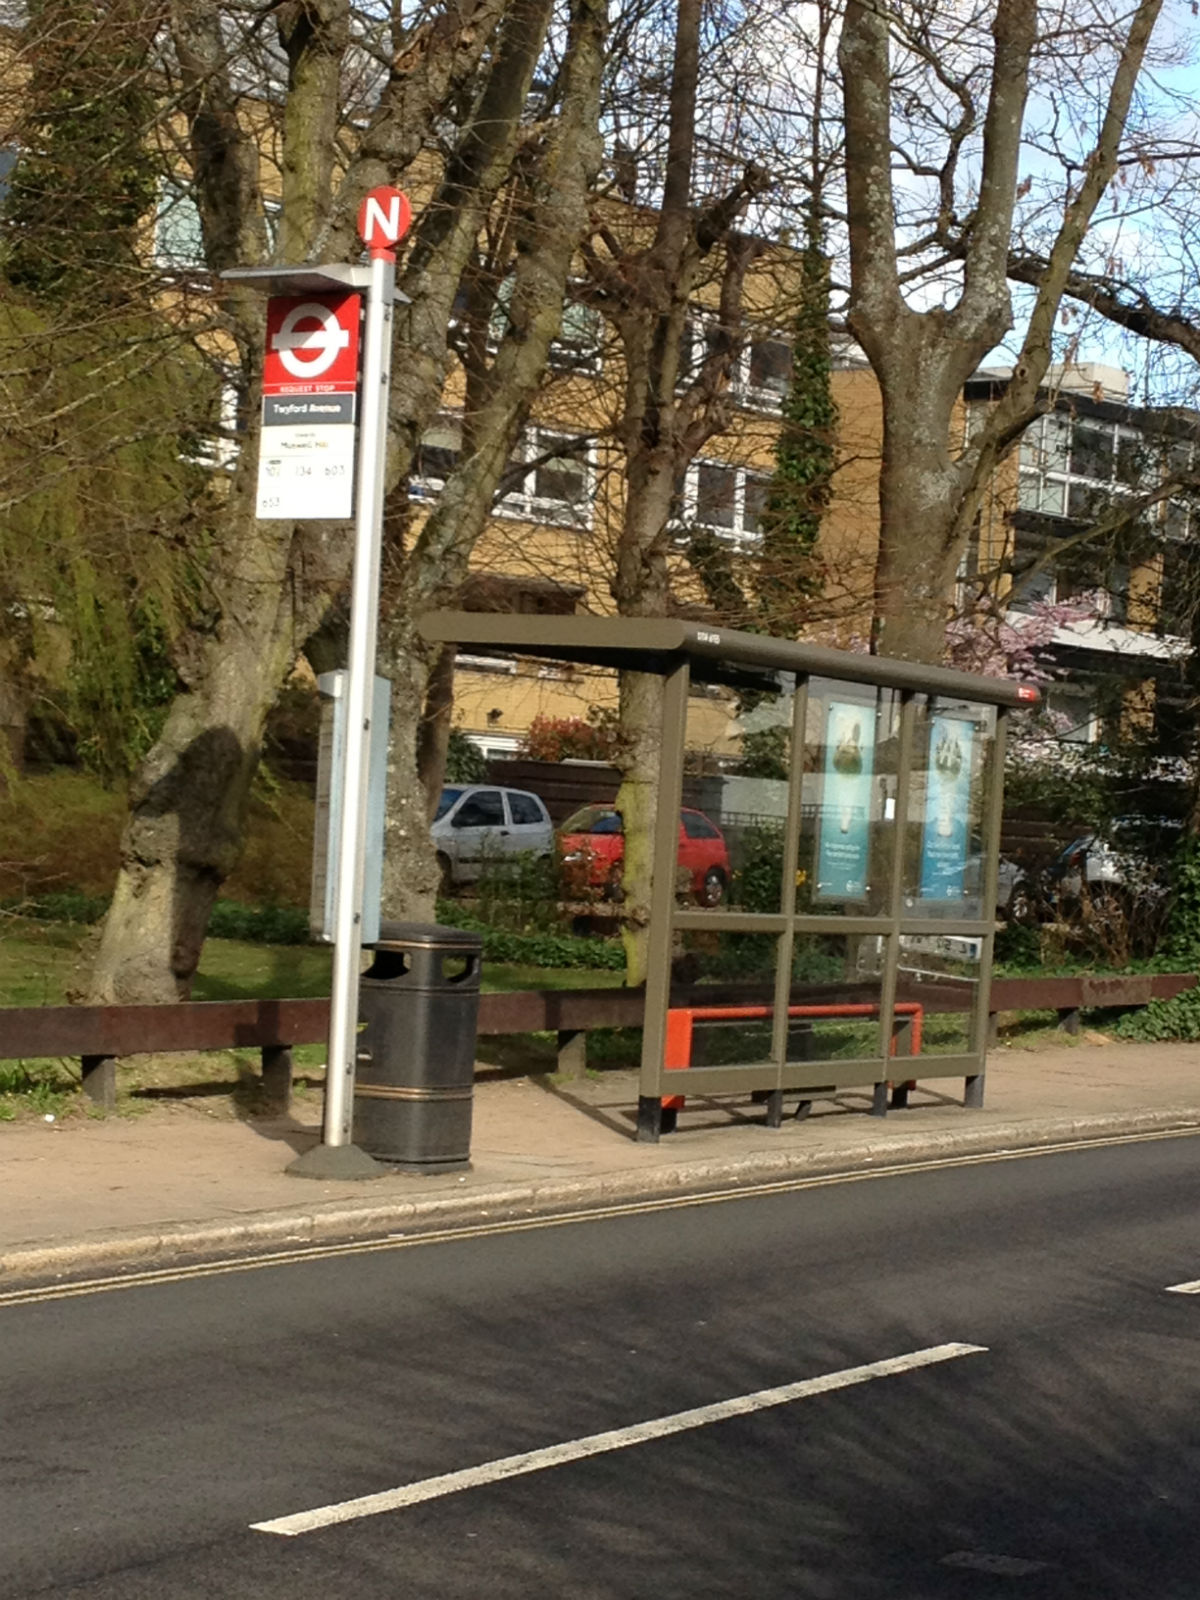 The bus stop in Fortis Green where the 79-year-old woman was sexually assaulted.